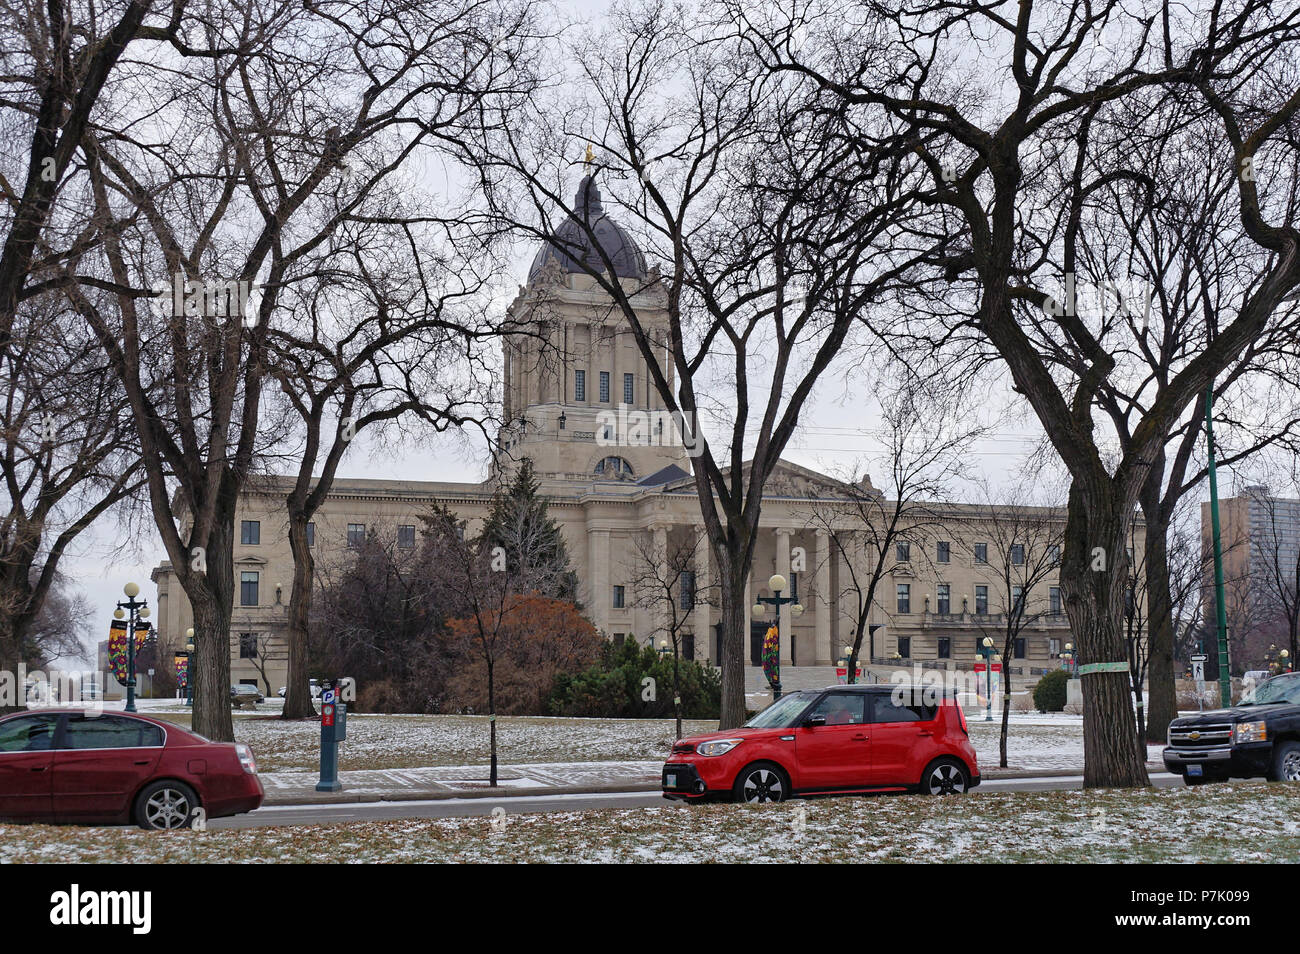 WINNIPEG, CANADA - 2014-11-16: Cars on winter Memorial Boulevard in front of Manitoba Legislature building. This neoclassical structure built in 1920 in the centre of Winnipeg stands 77 metres tall - Stock Image